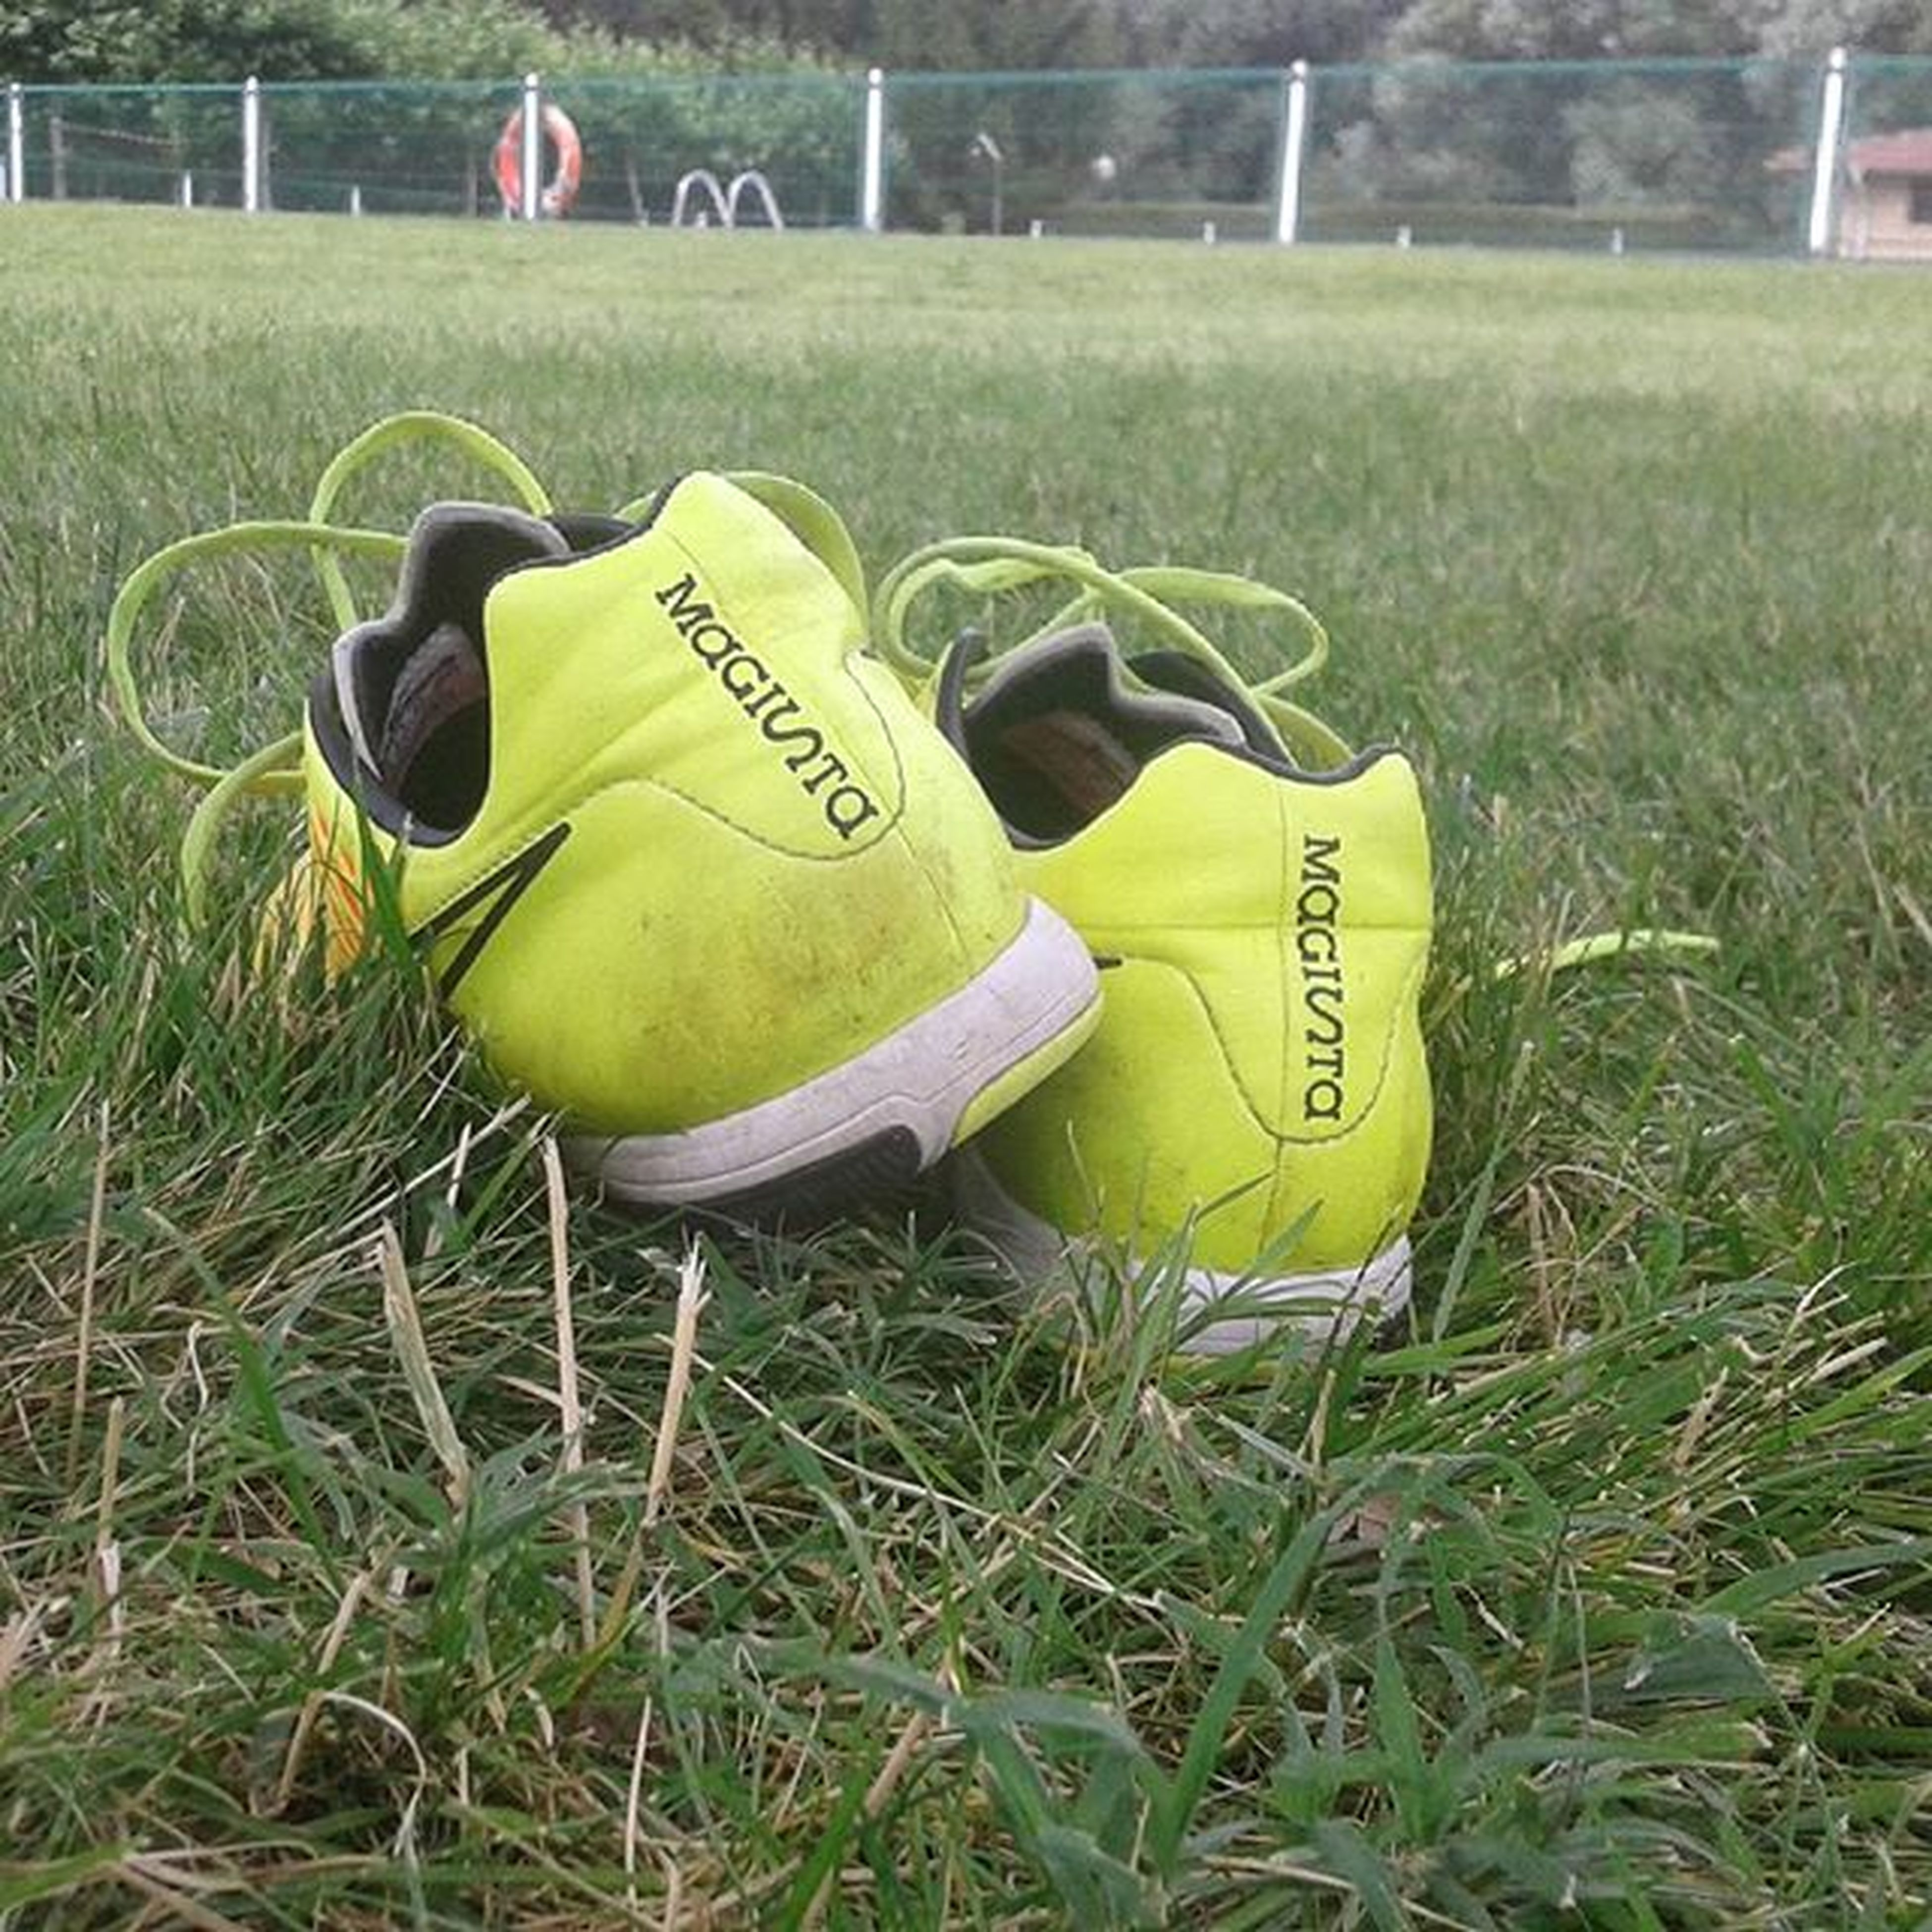 grass, field, grassy, green color, yellow, toy, day, outdoors, lawn, close-up, high angle view, childhood, relaxation, sunlight, grassland, no people, sport, shoe, text, western script